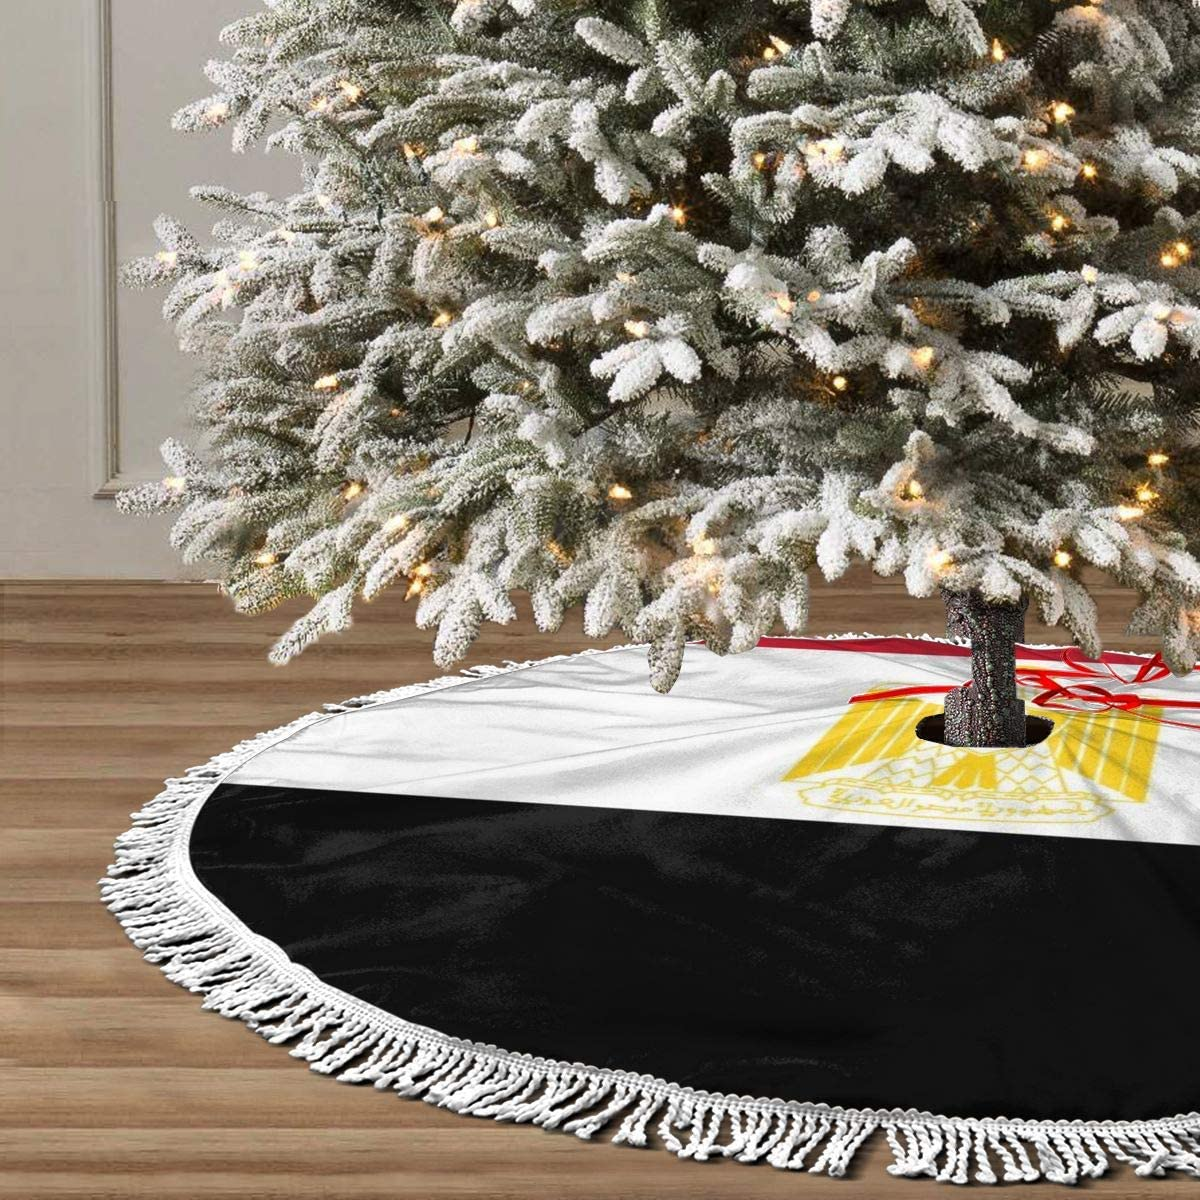 Xmas Tree Skirt 36 Inch,Egypt Flag White Tassel Edge Country Christmas Tree Skirts for Party Holiday Decorations Xmas Ornaments